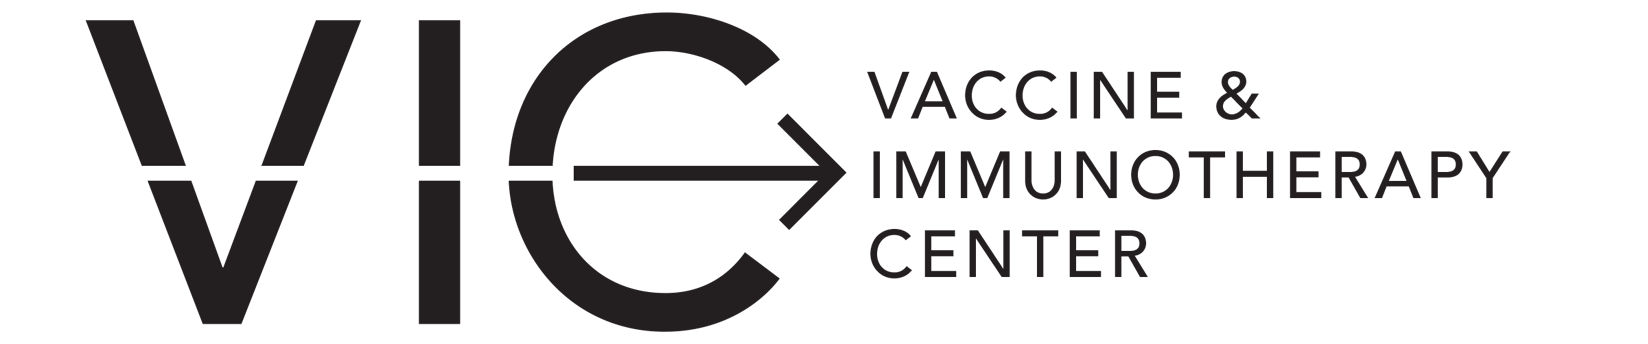 Vaccine & Immunotherapy Center